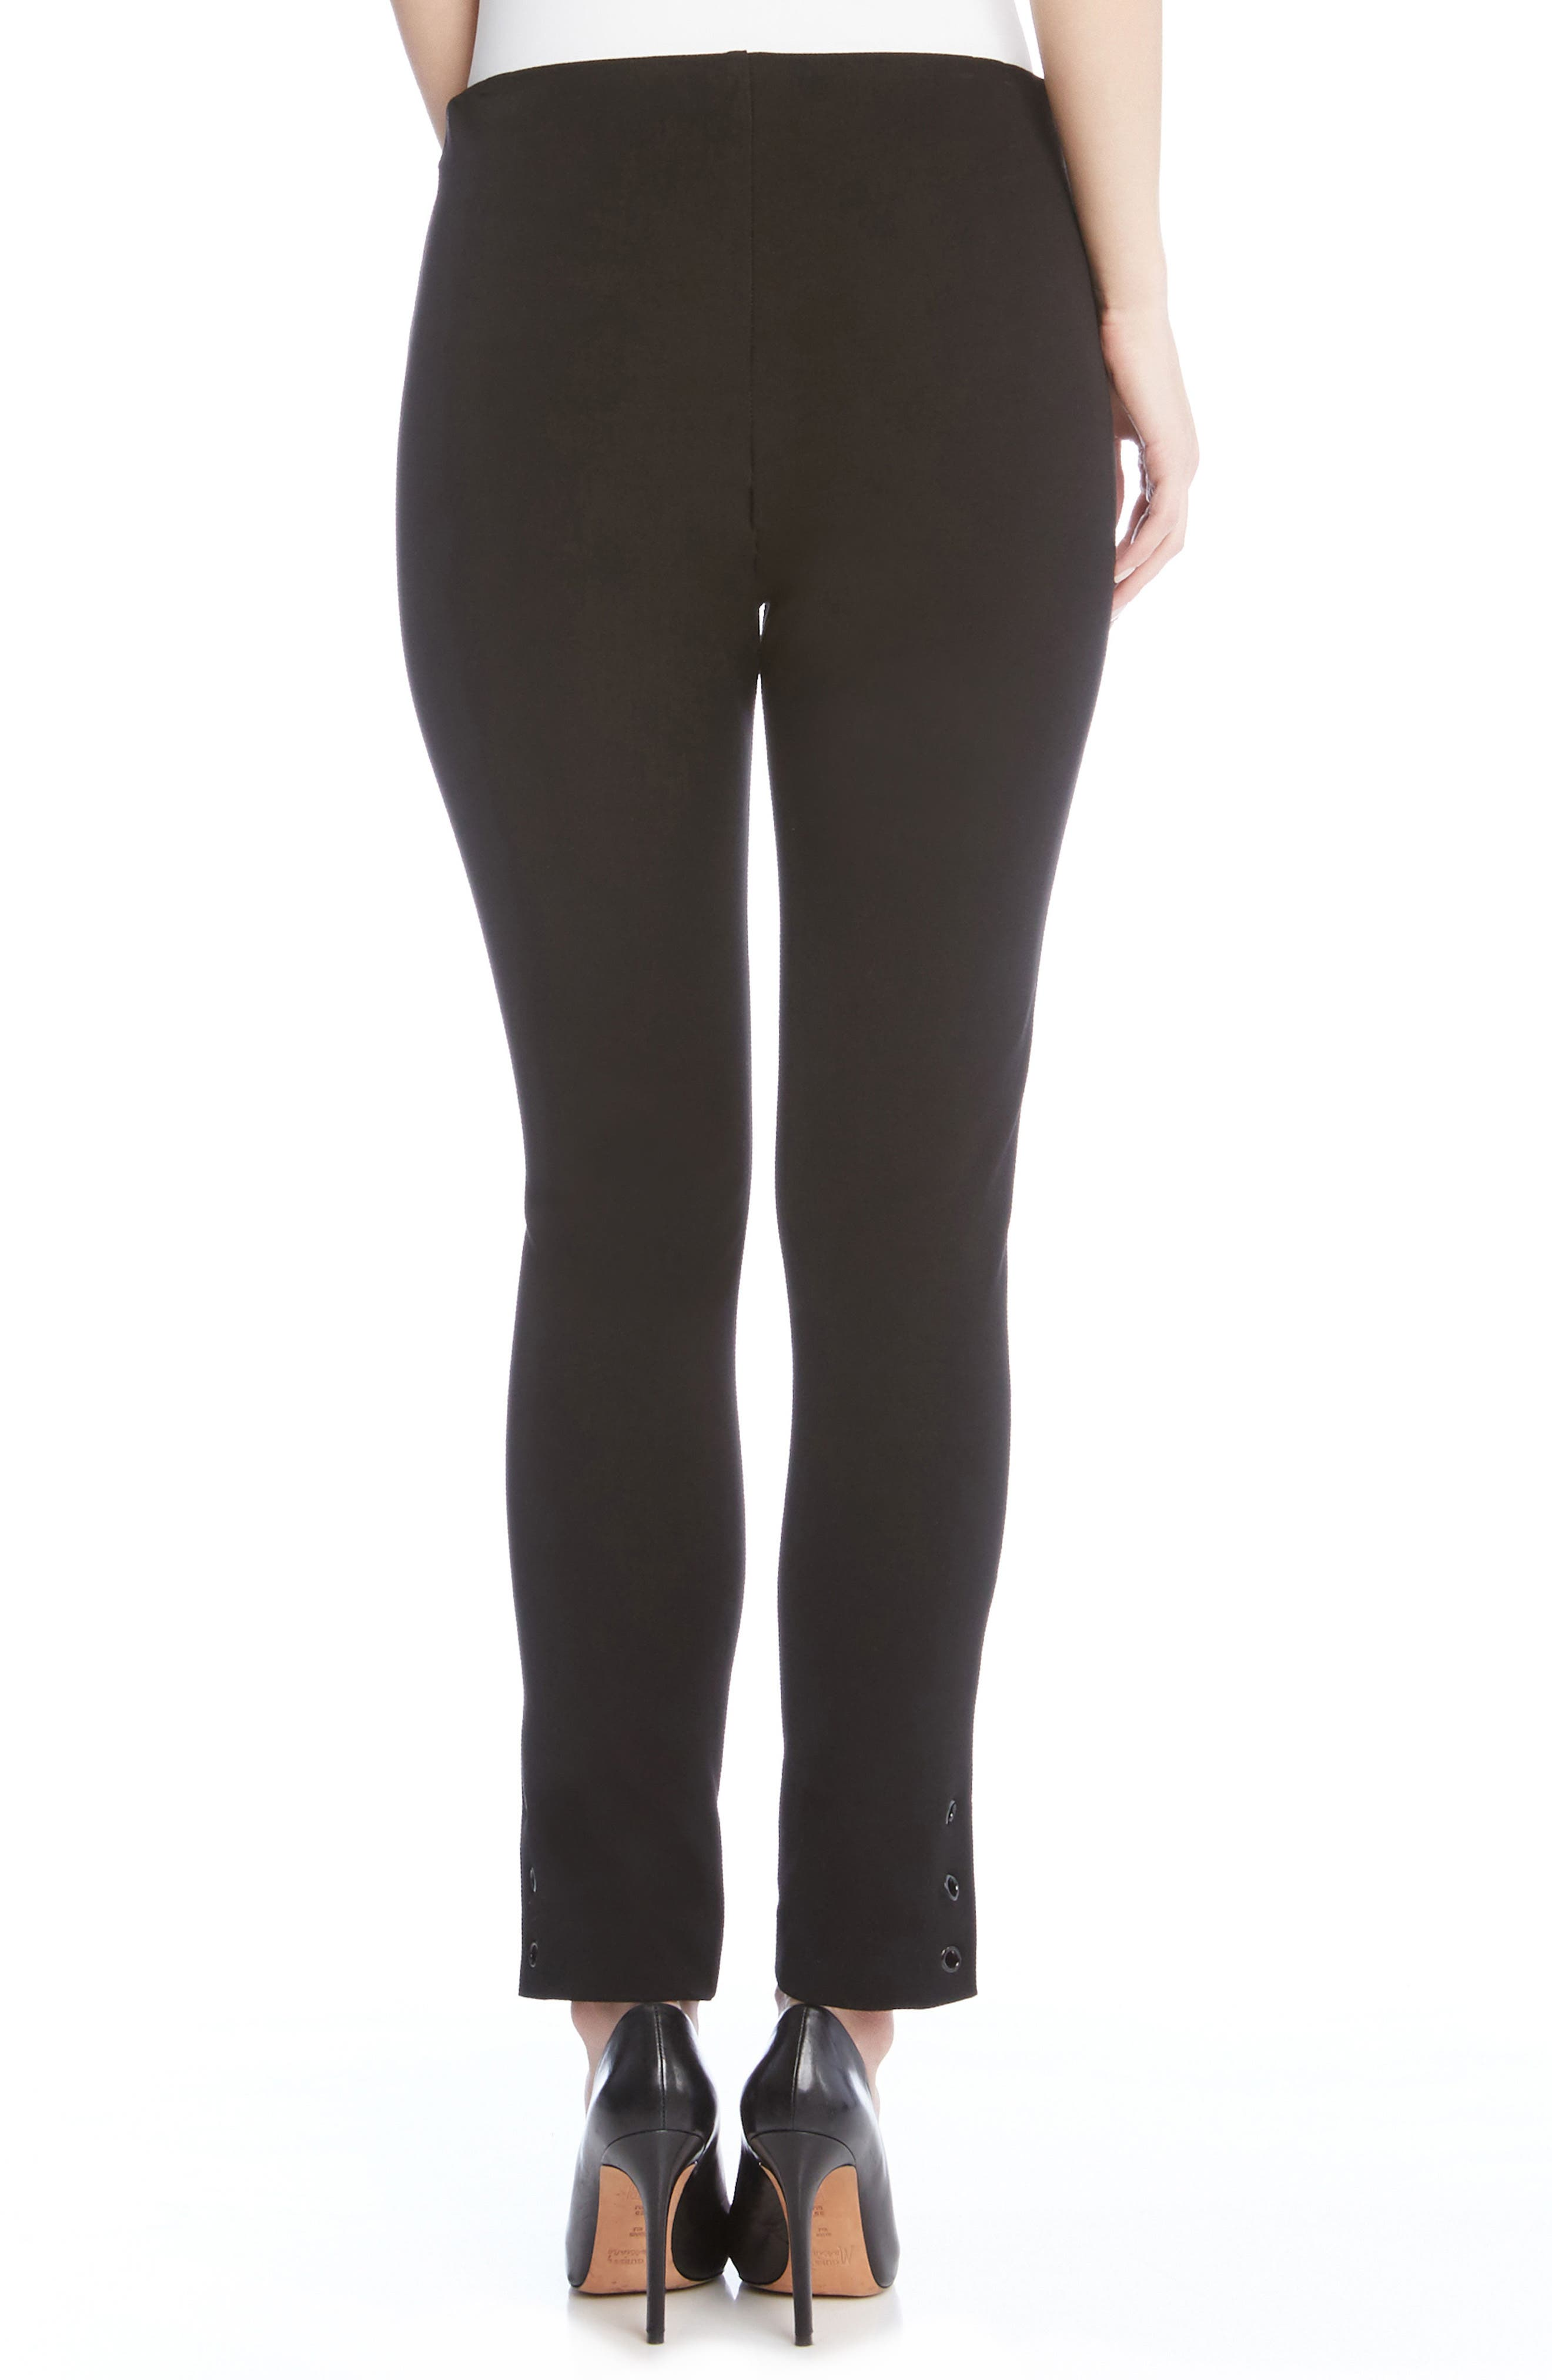 Piper Grommet Detail Skinny Pants,                             Alternate thumbnail 2, color,                             Black